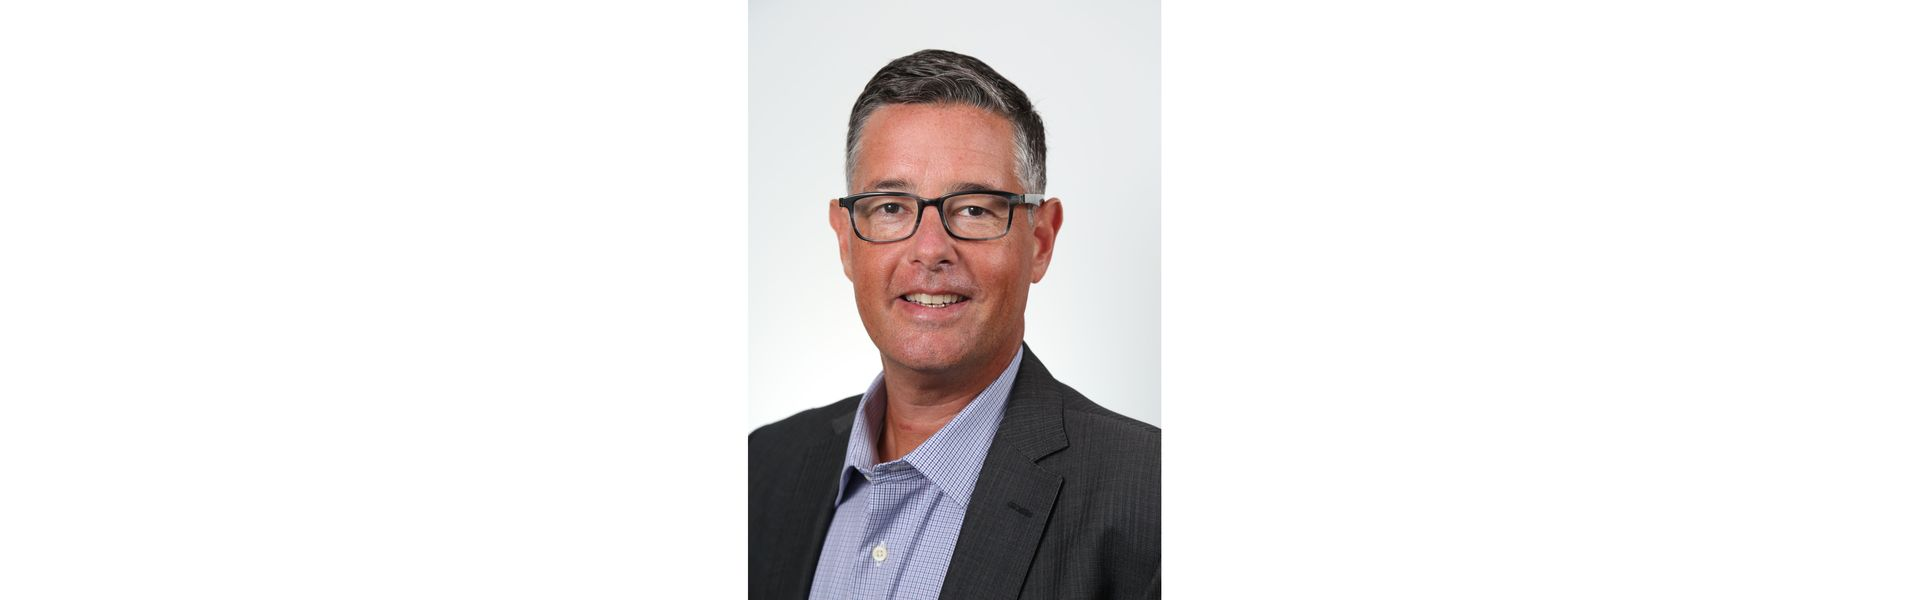 Conduent Names Mick Slattery to Lead Conduent Transportation LLC